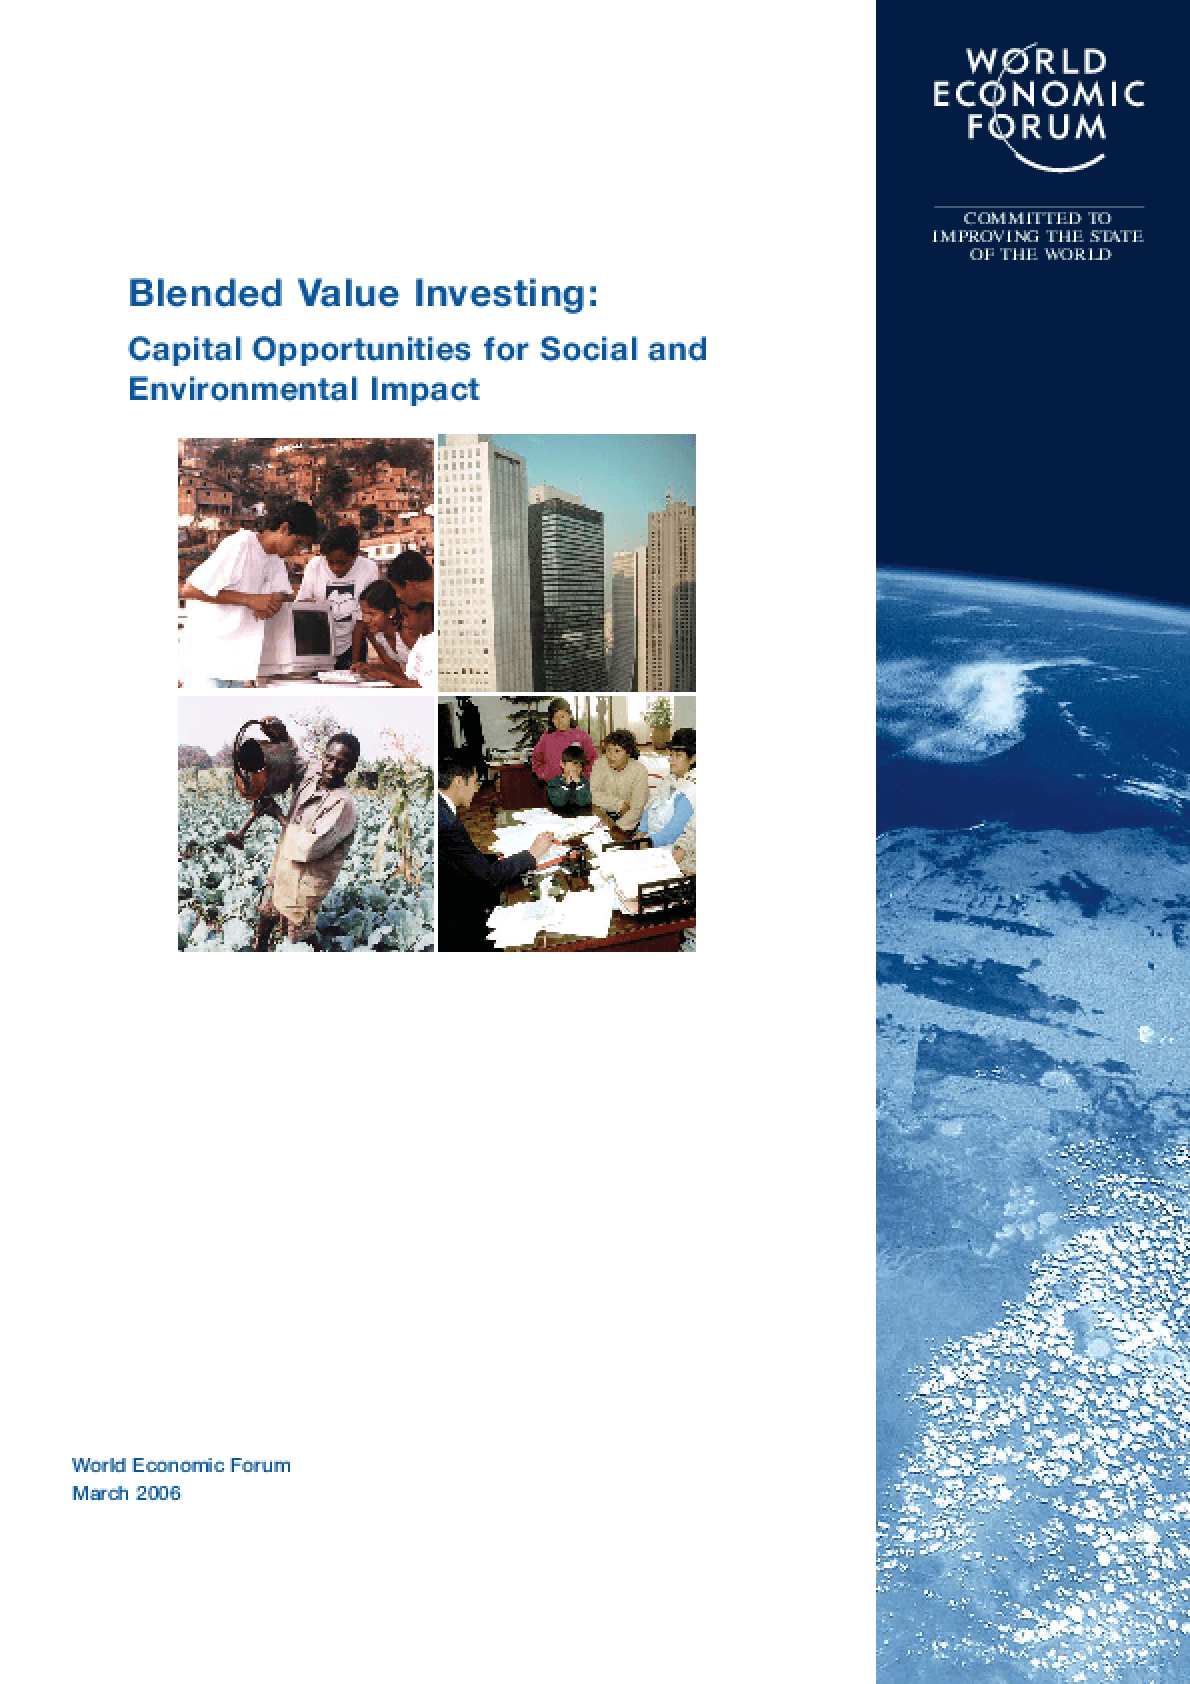 Blended Value Investing: Capital Opportunities for Social and Environmental Impact